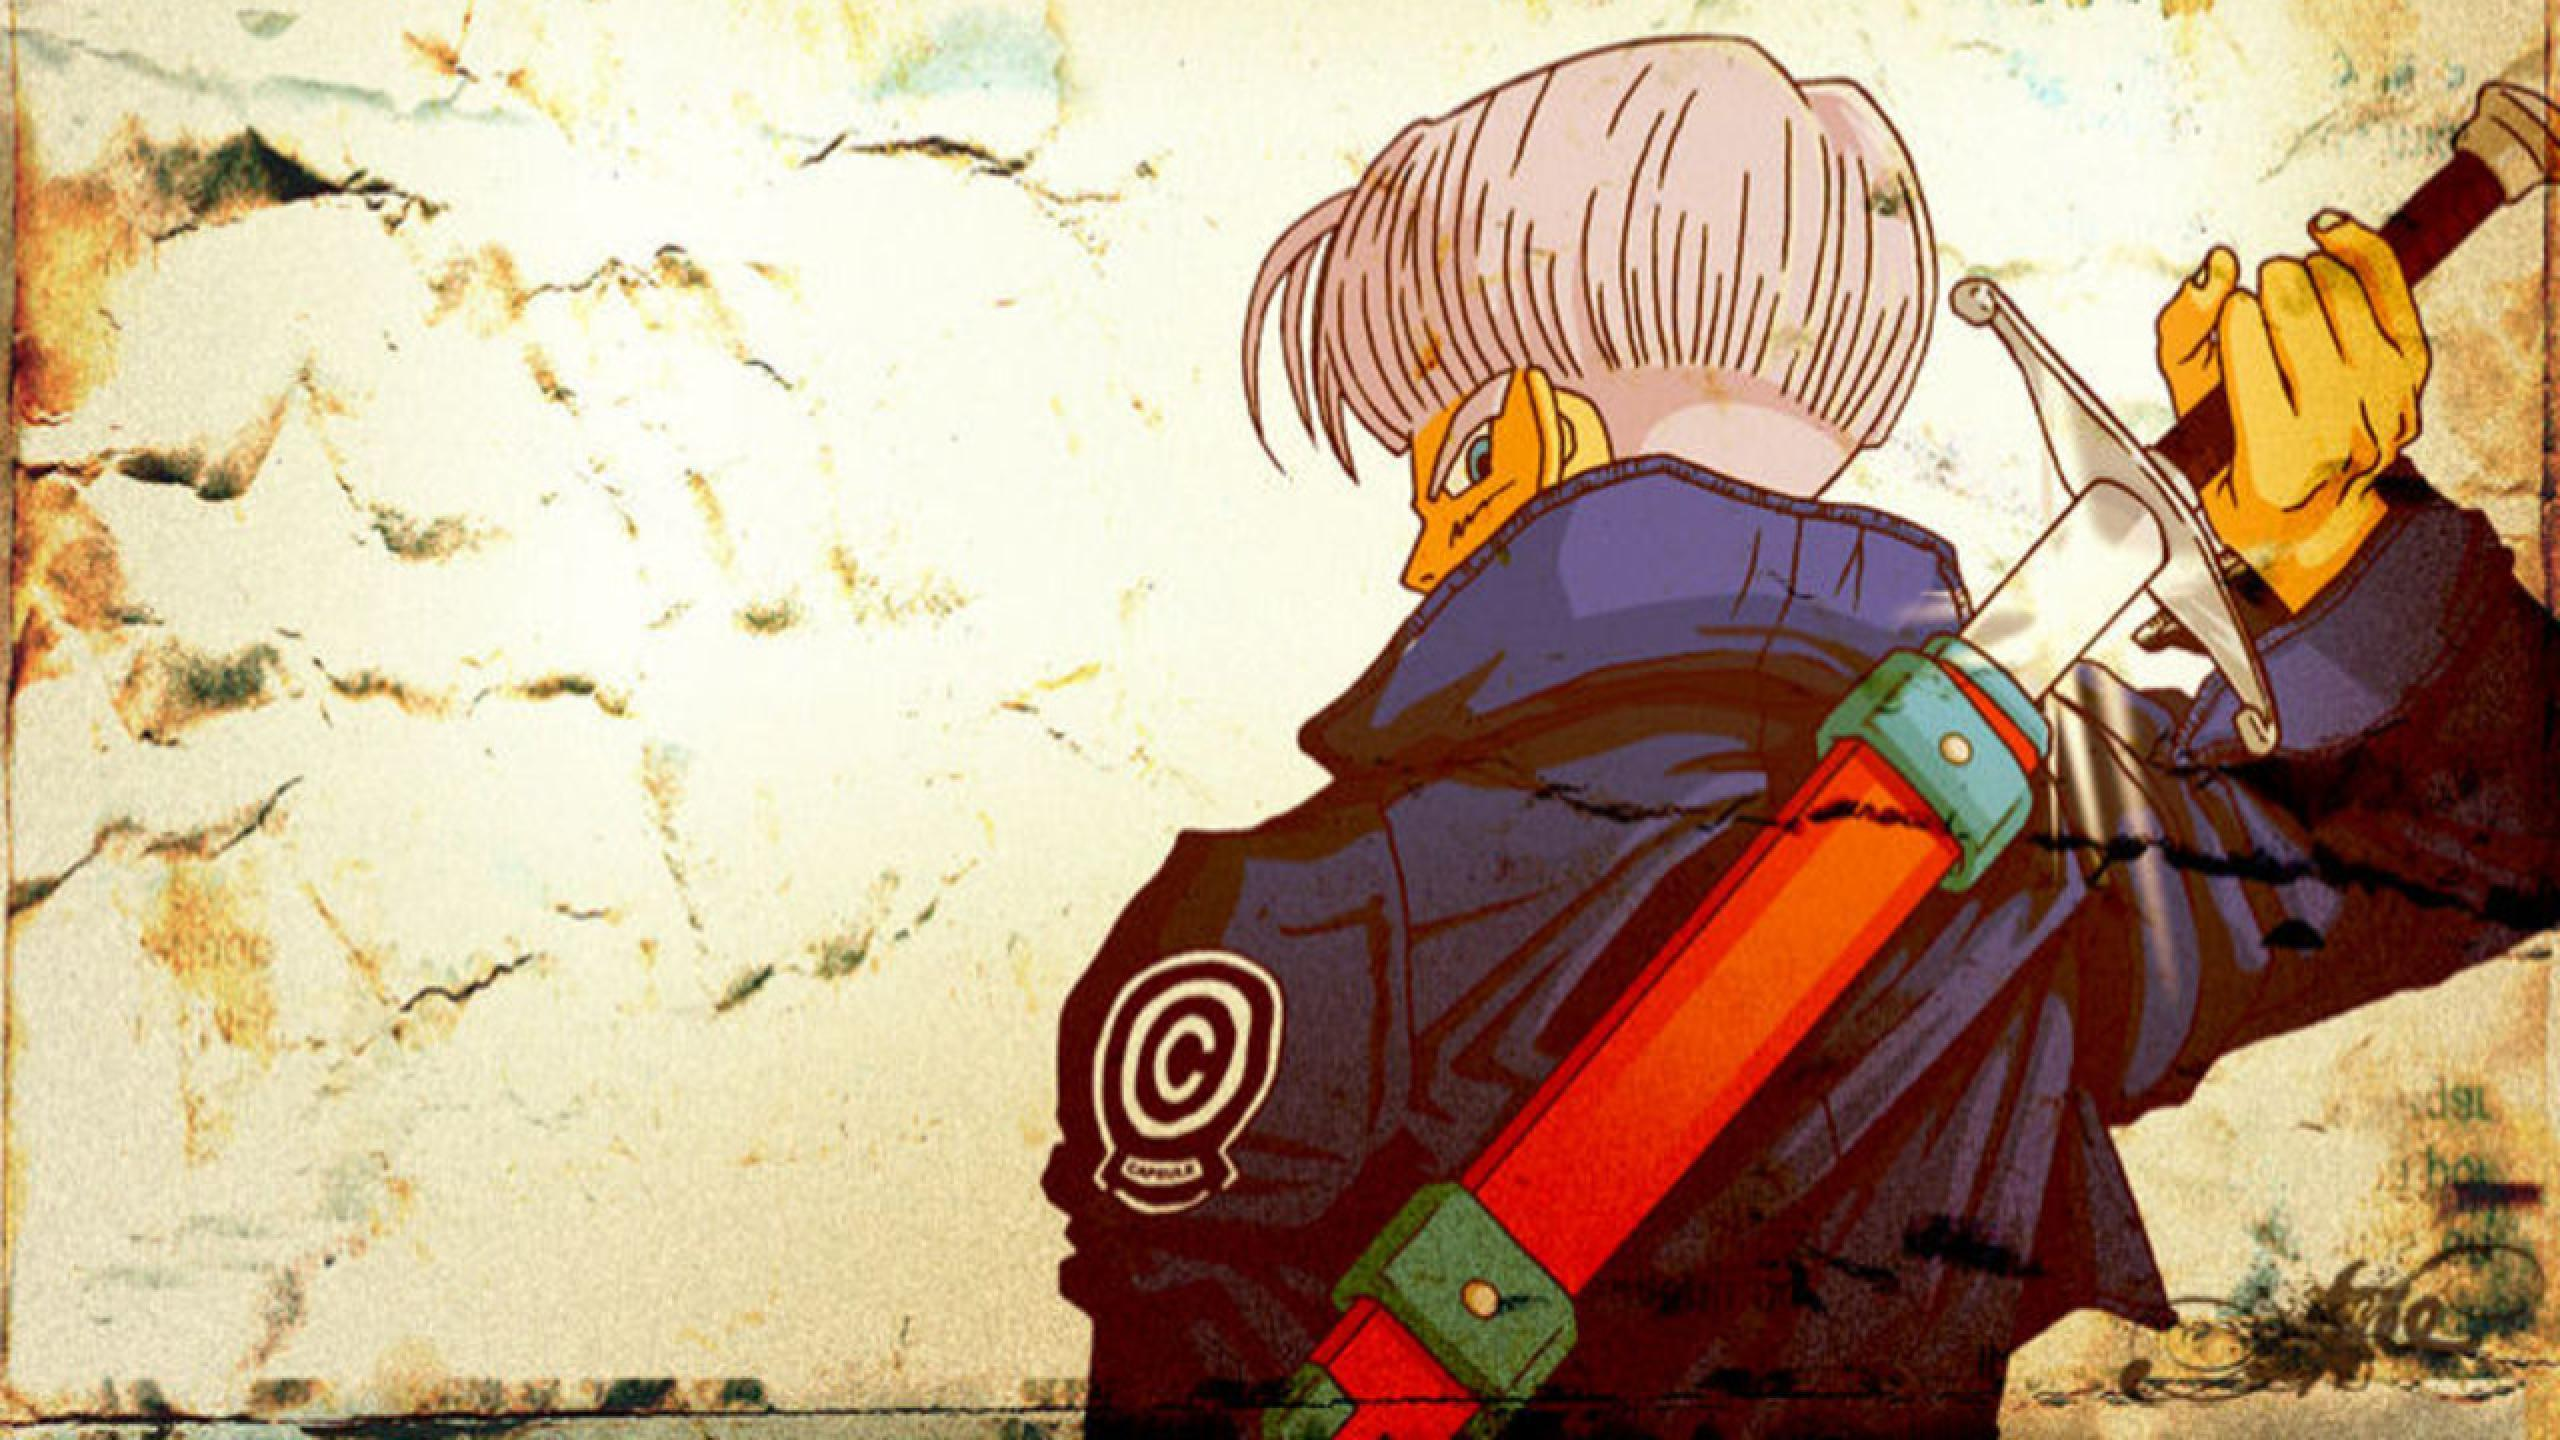 Trunks Wallpapers Top Free Trunks Backgrounds